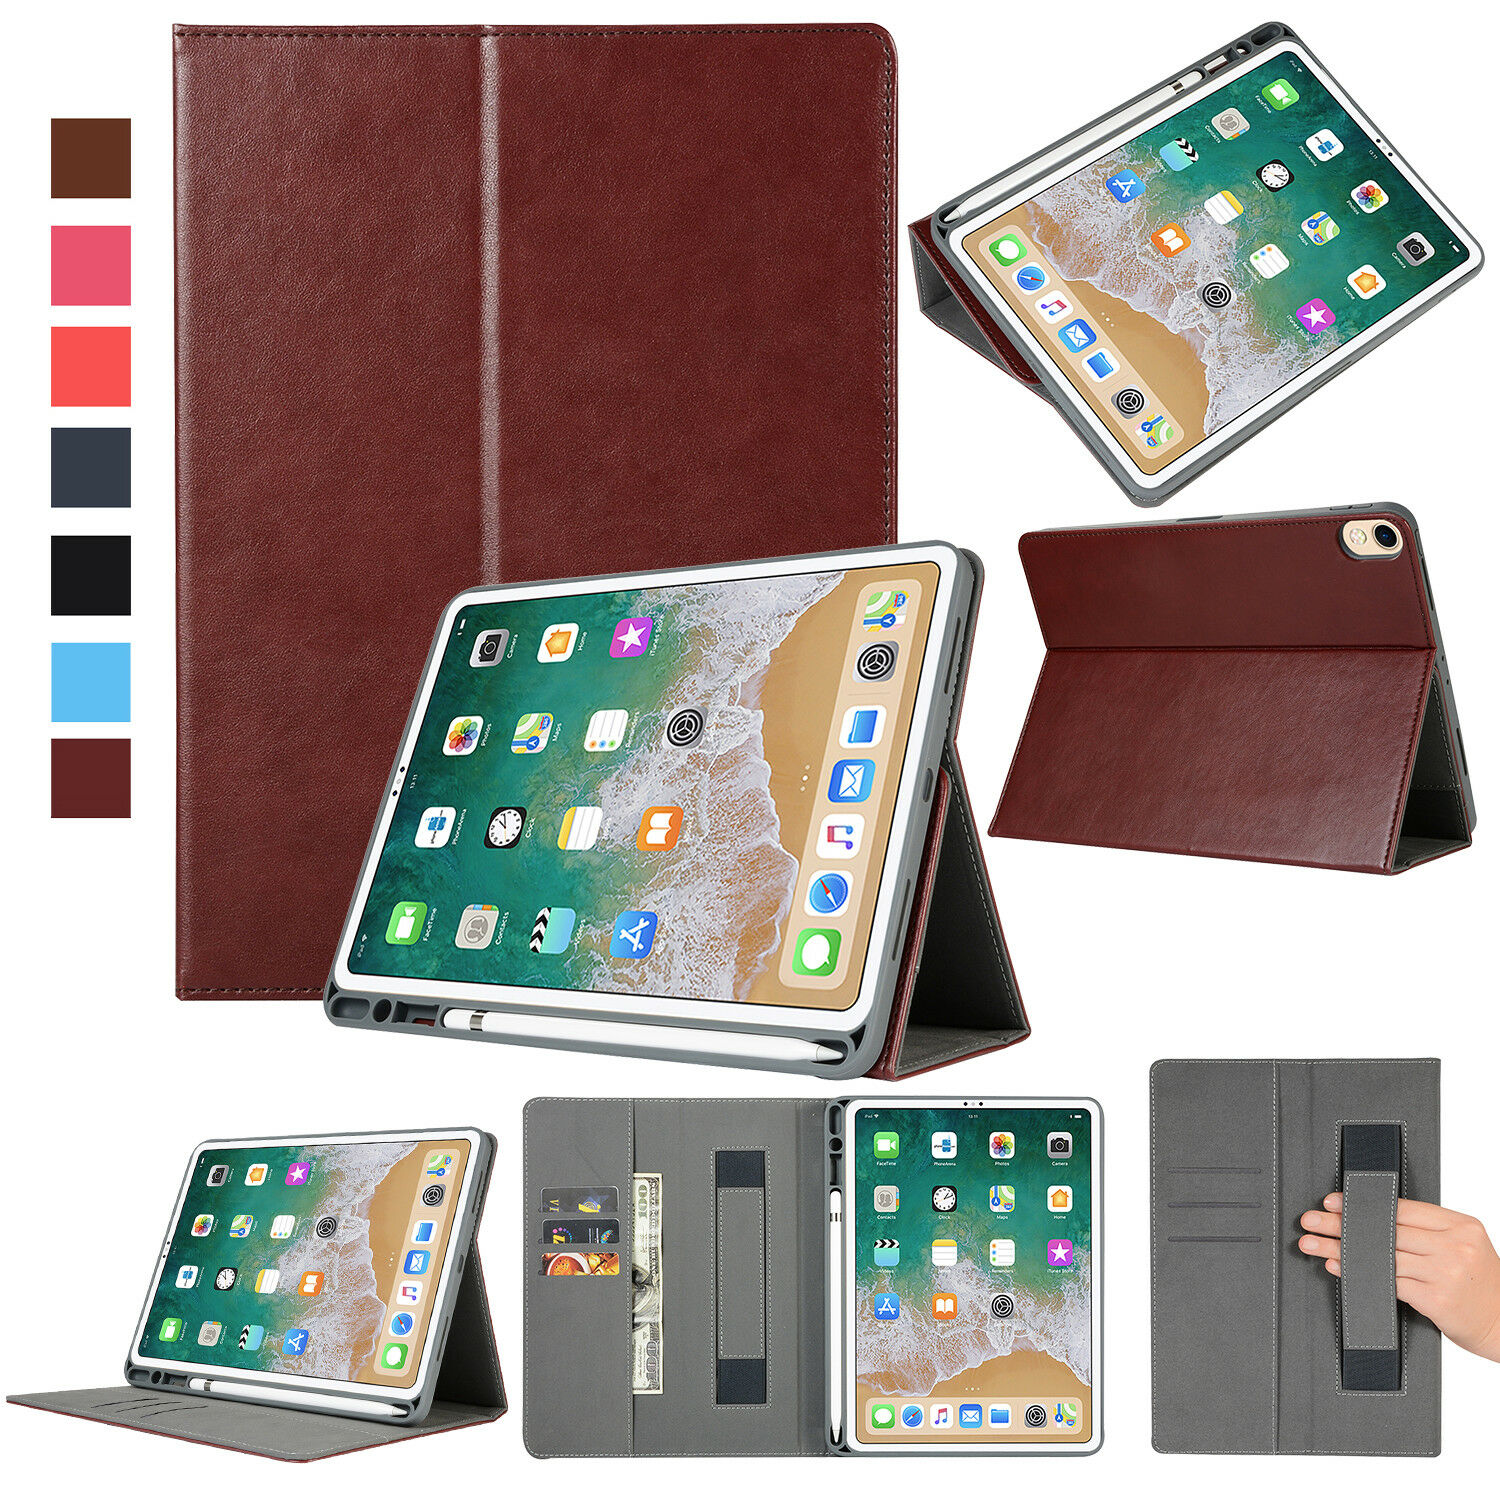 Case for Apple iPad Pro 11-Inch 2018 Smart Case Leather Wall